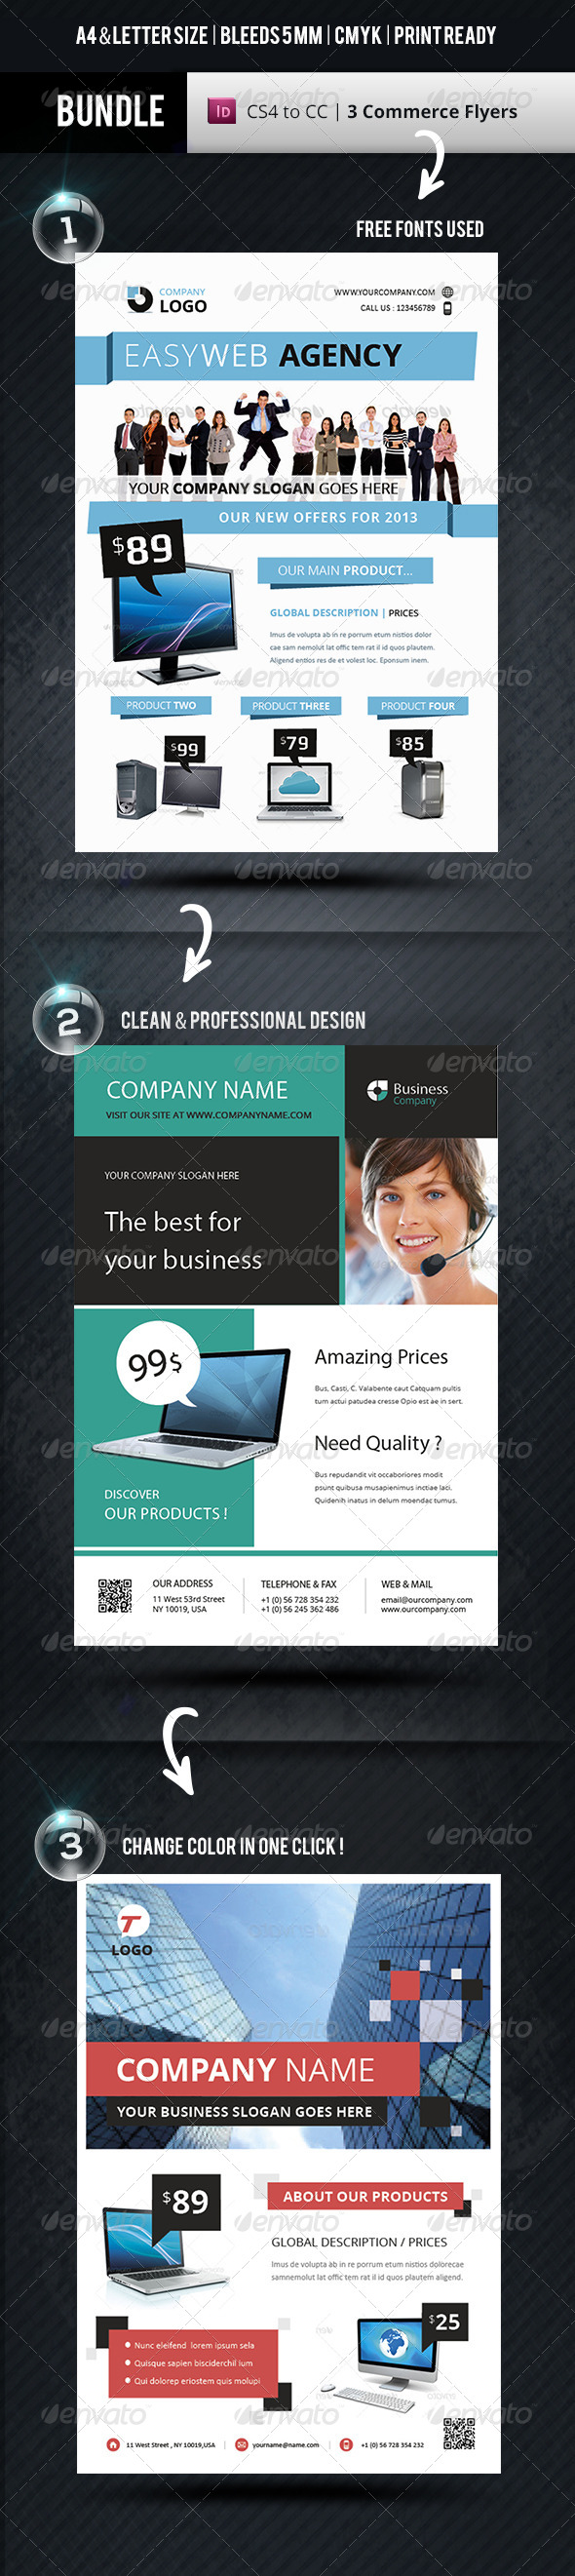 GraphicRiver Bundle Business Flyer Indesign Templates 7883268